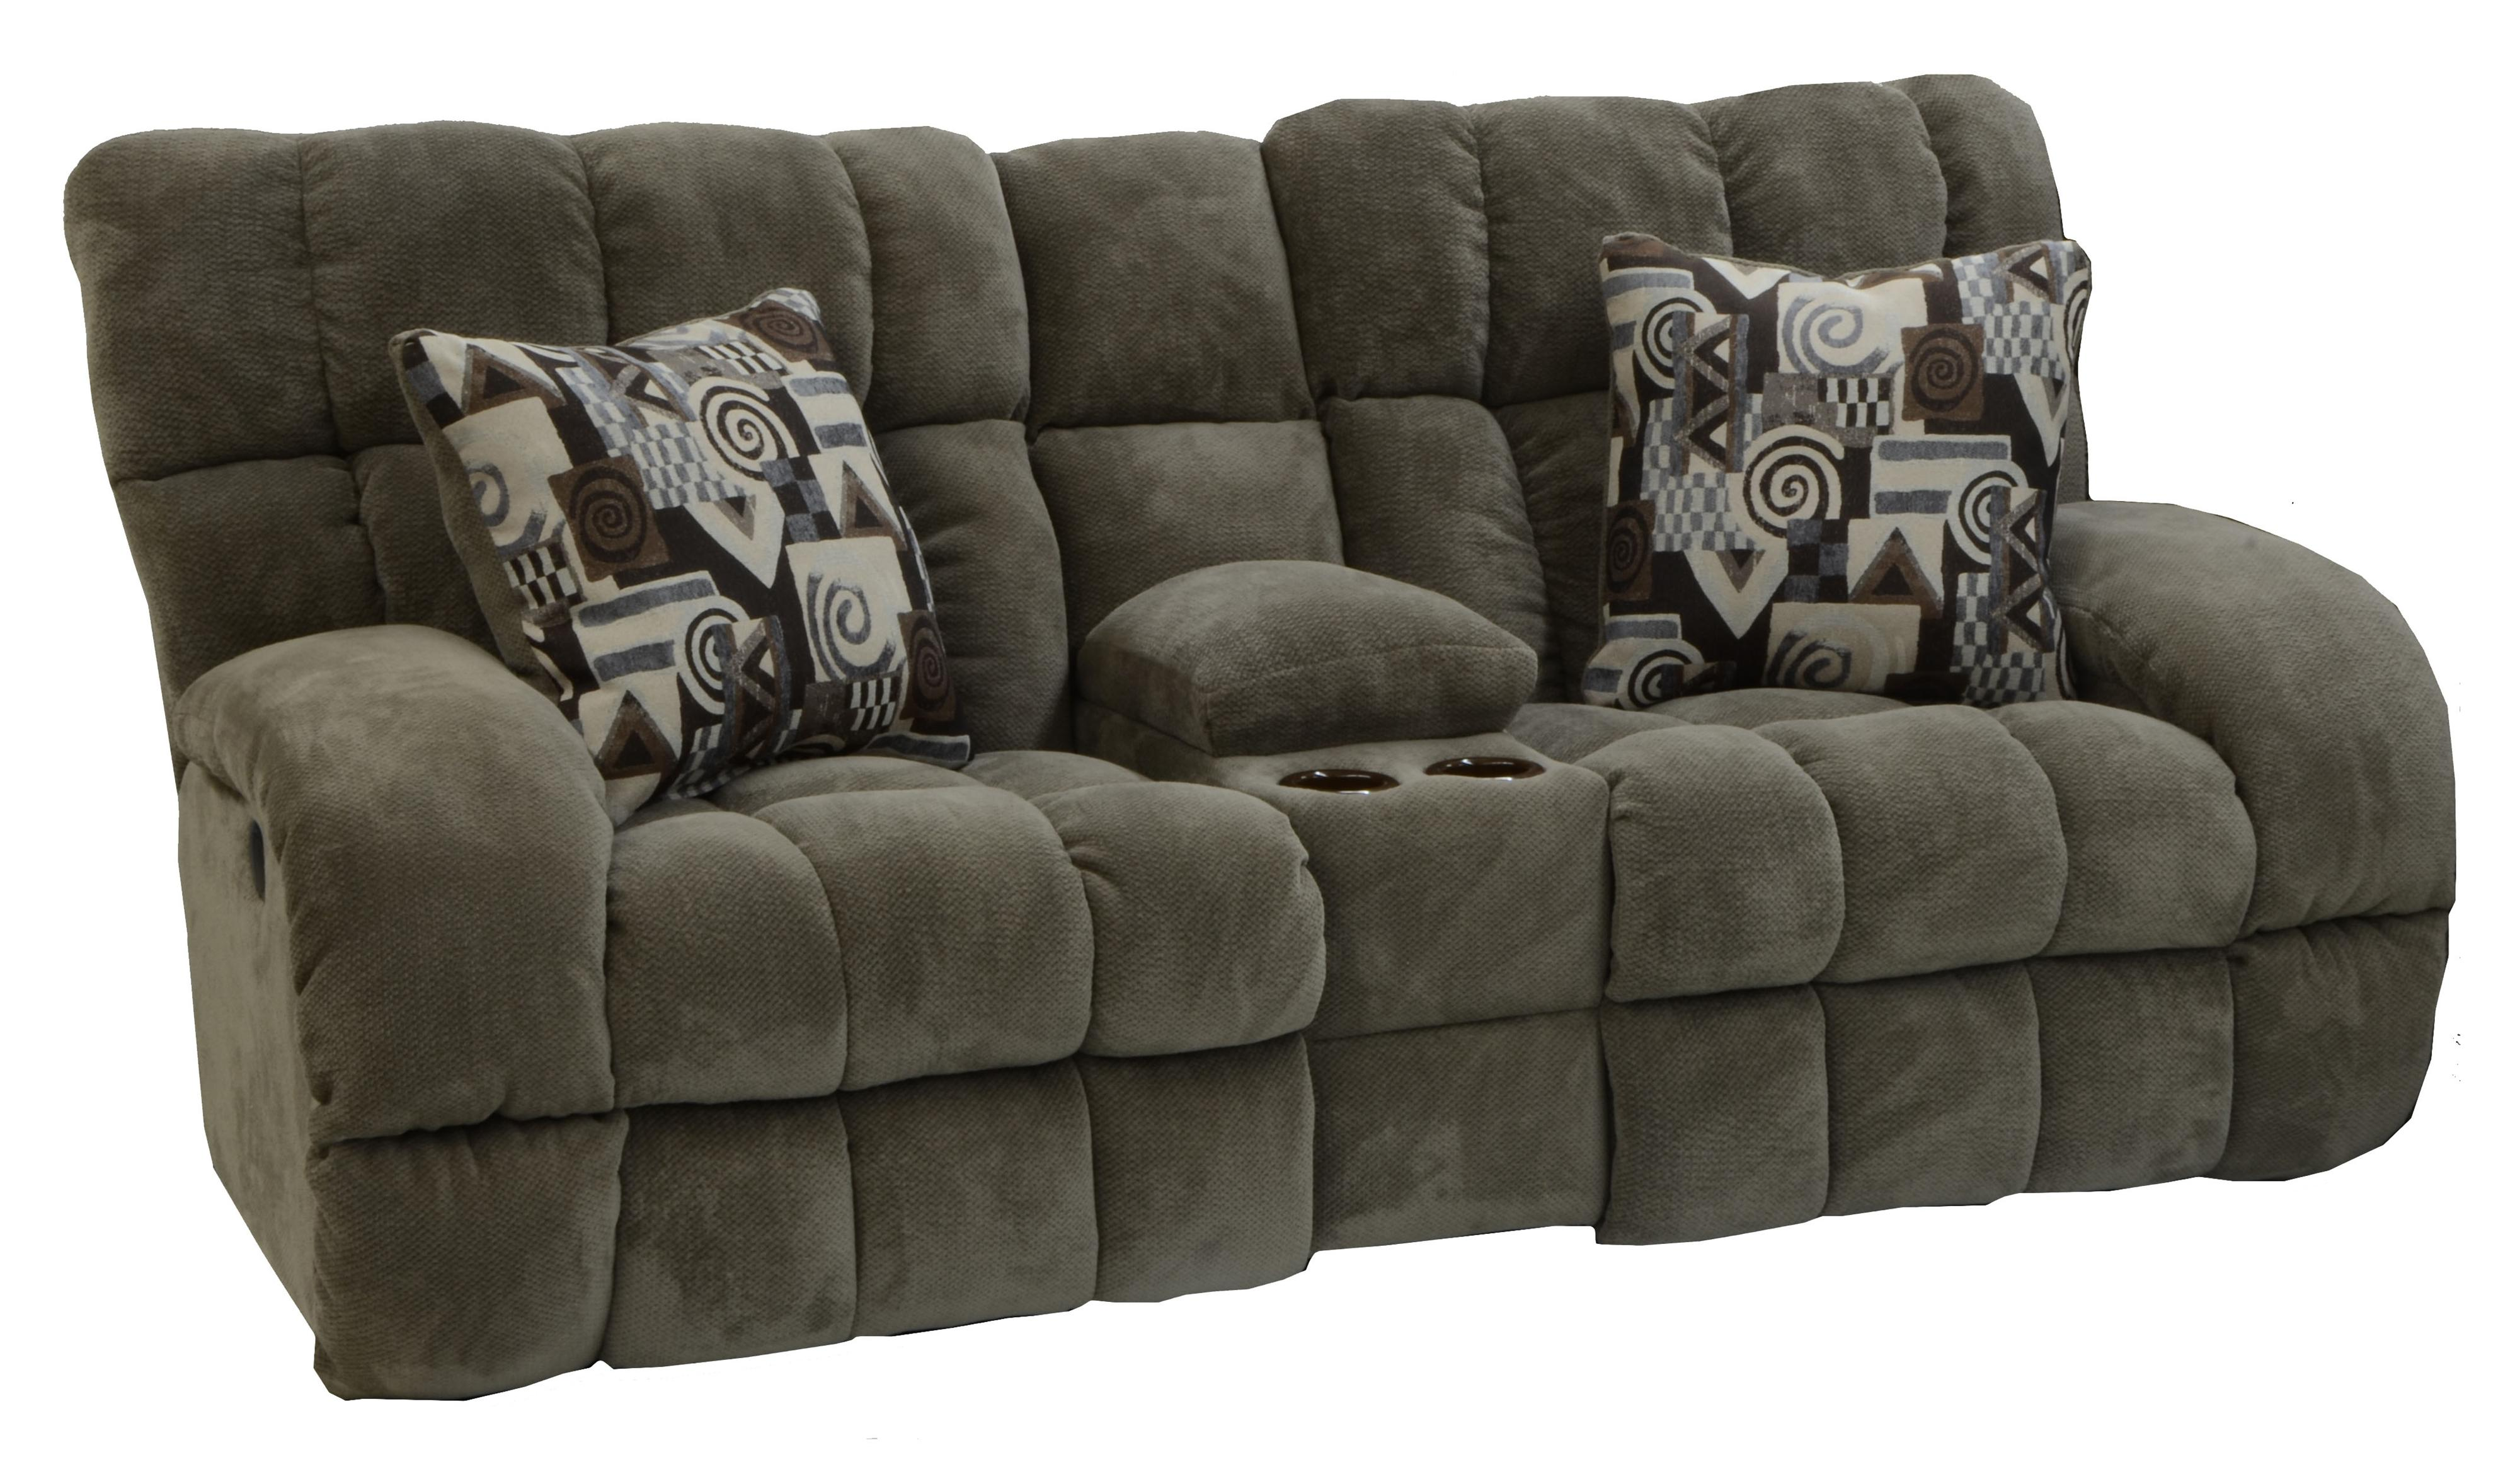 loveseat rooms number reyes three power way for less products item lay recliner flat catnapper